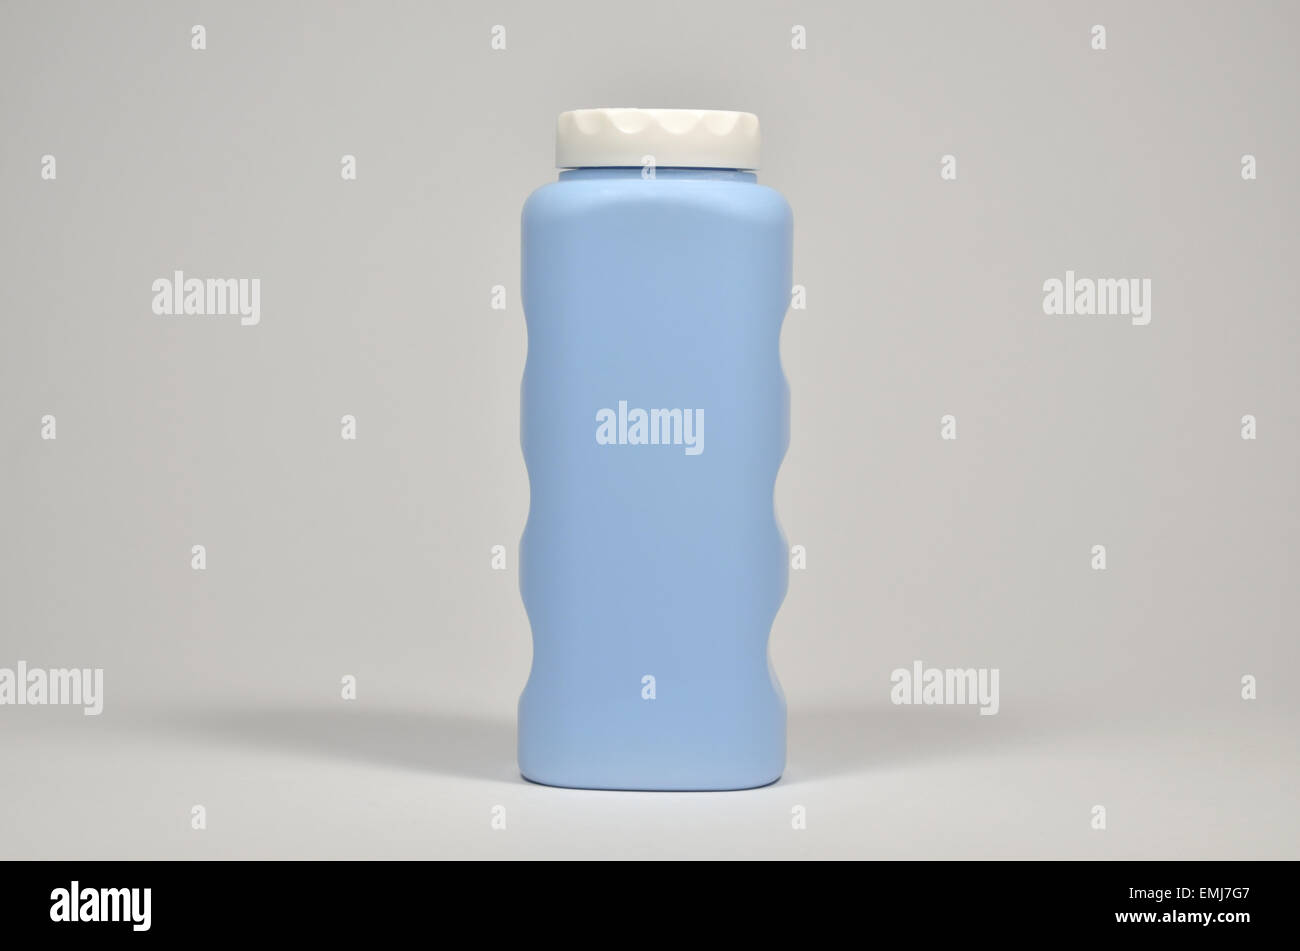 Blue plastic container for talc with white lid - Stock Image